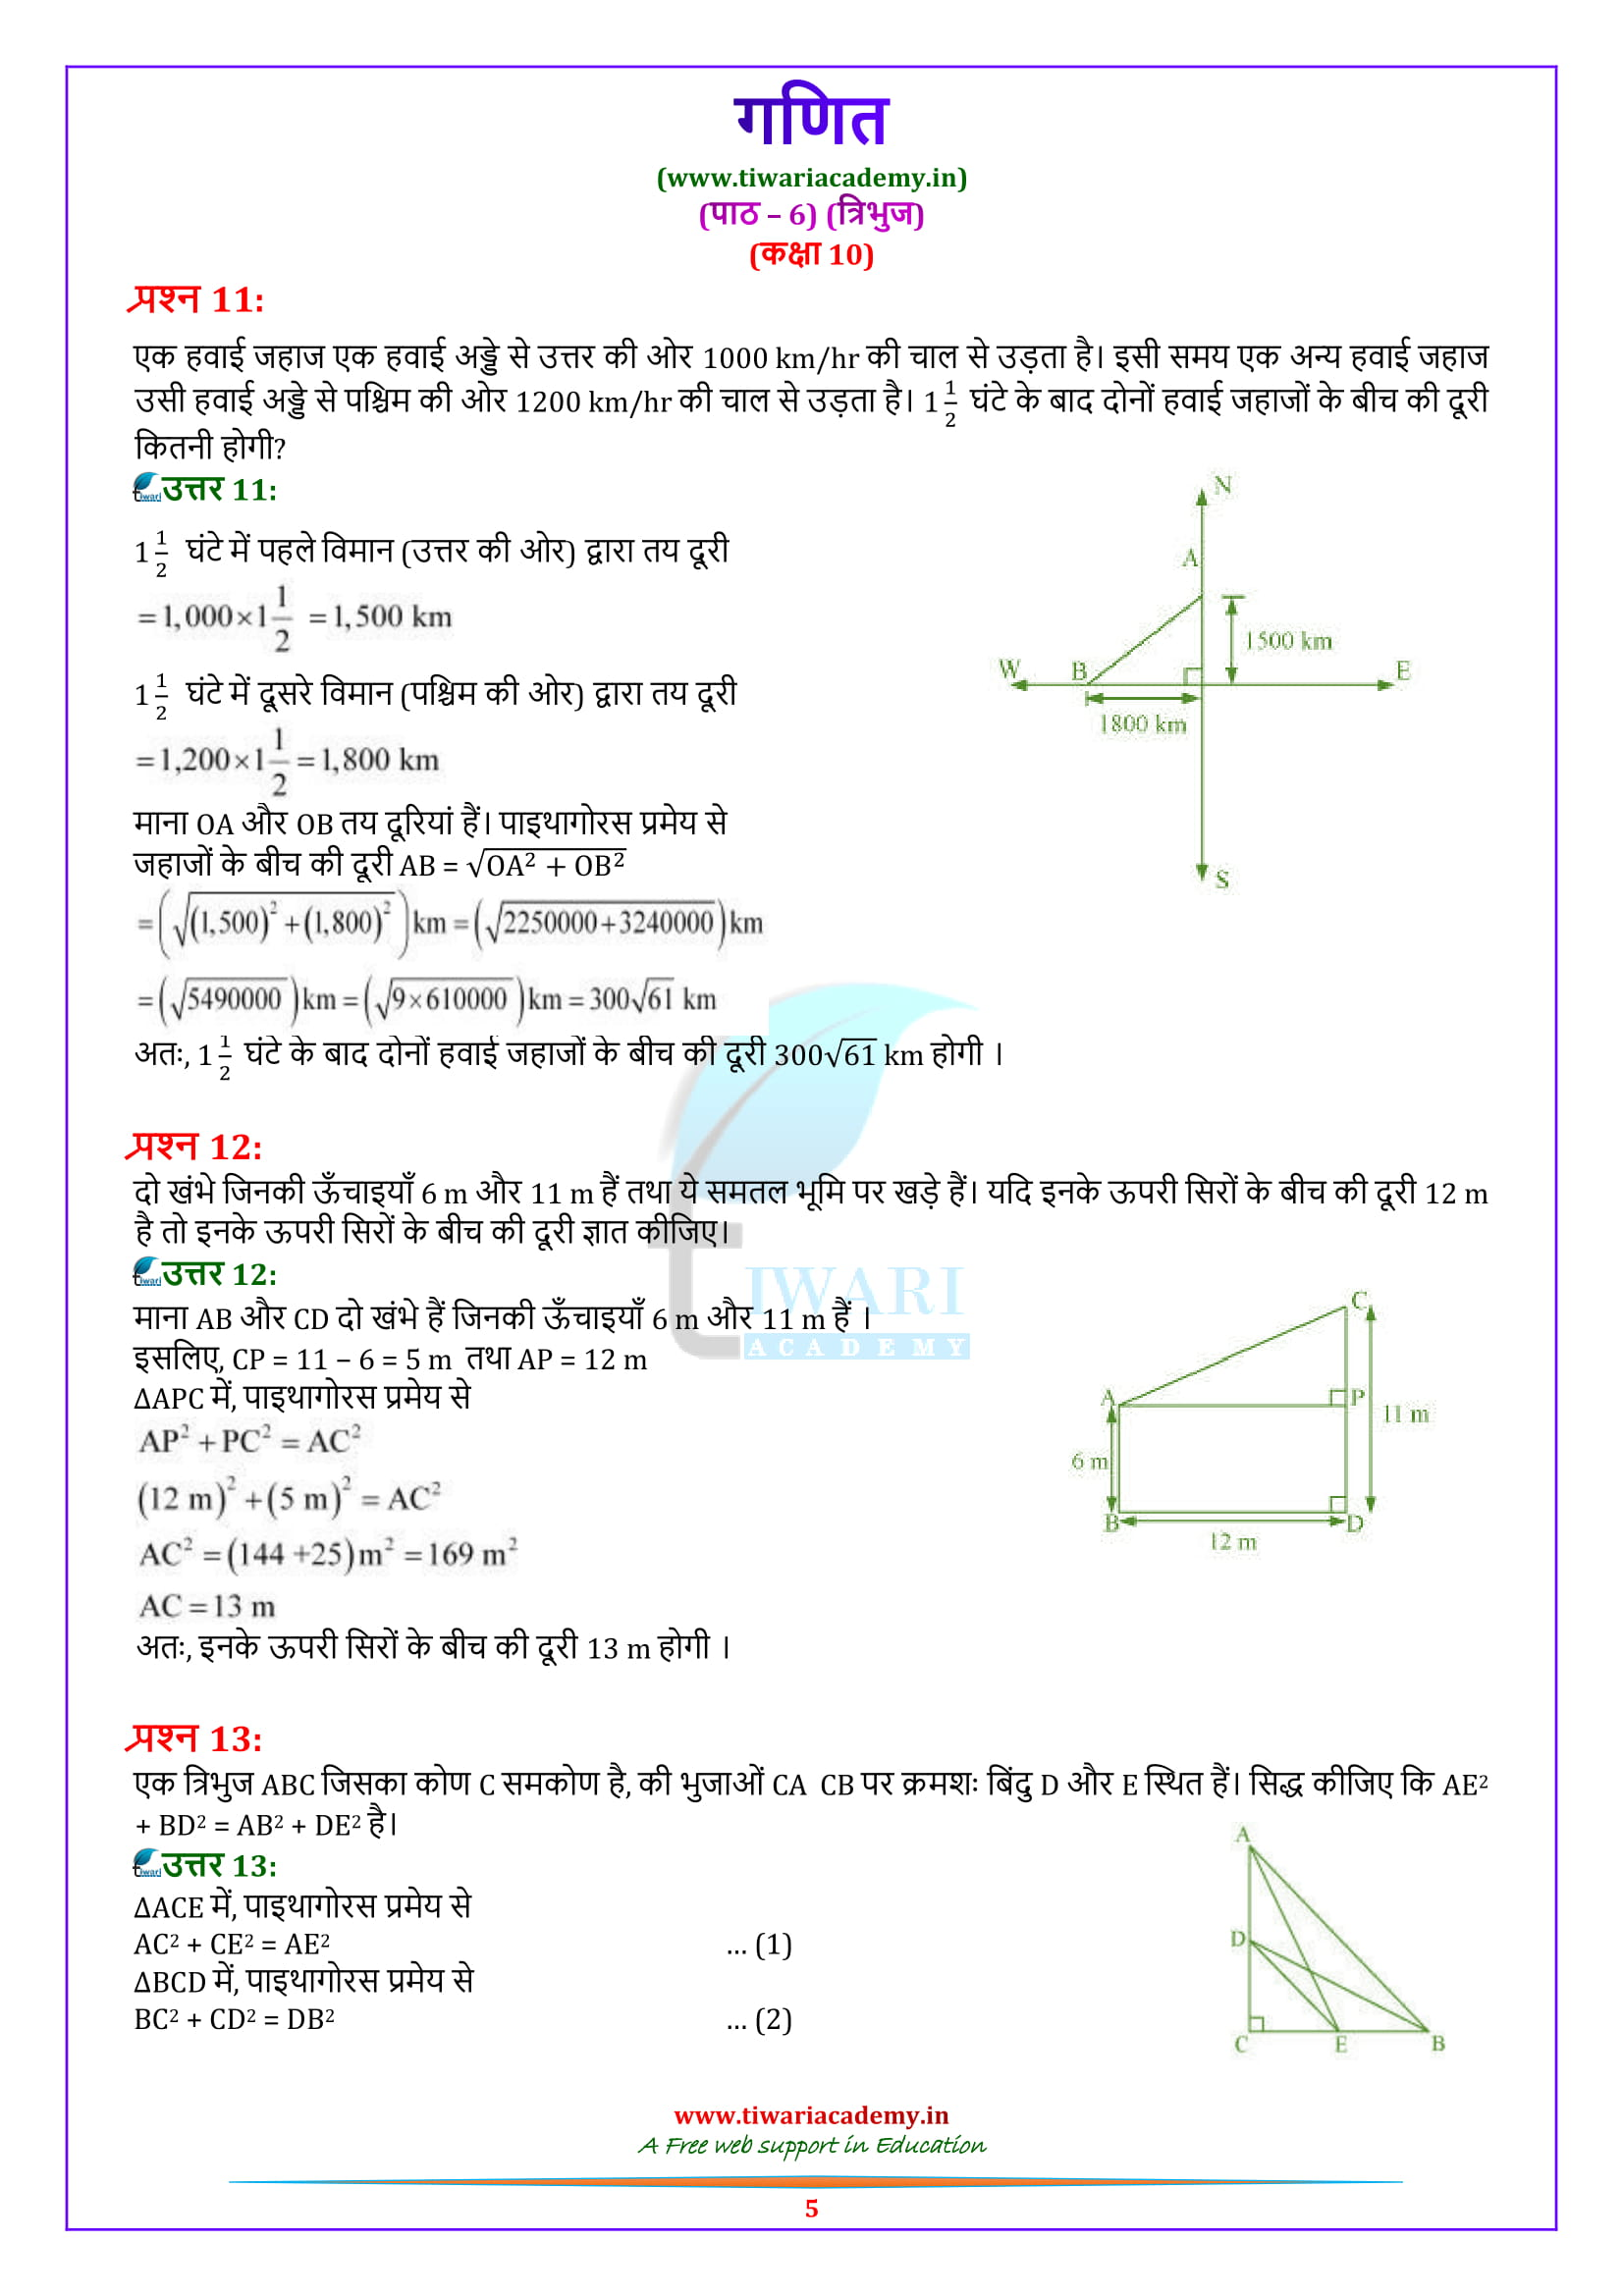 Class 10 Maths Exercise 6.5 Solutions in free pdf download